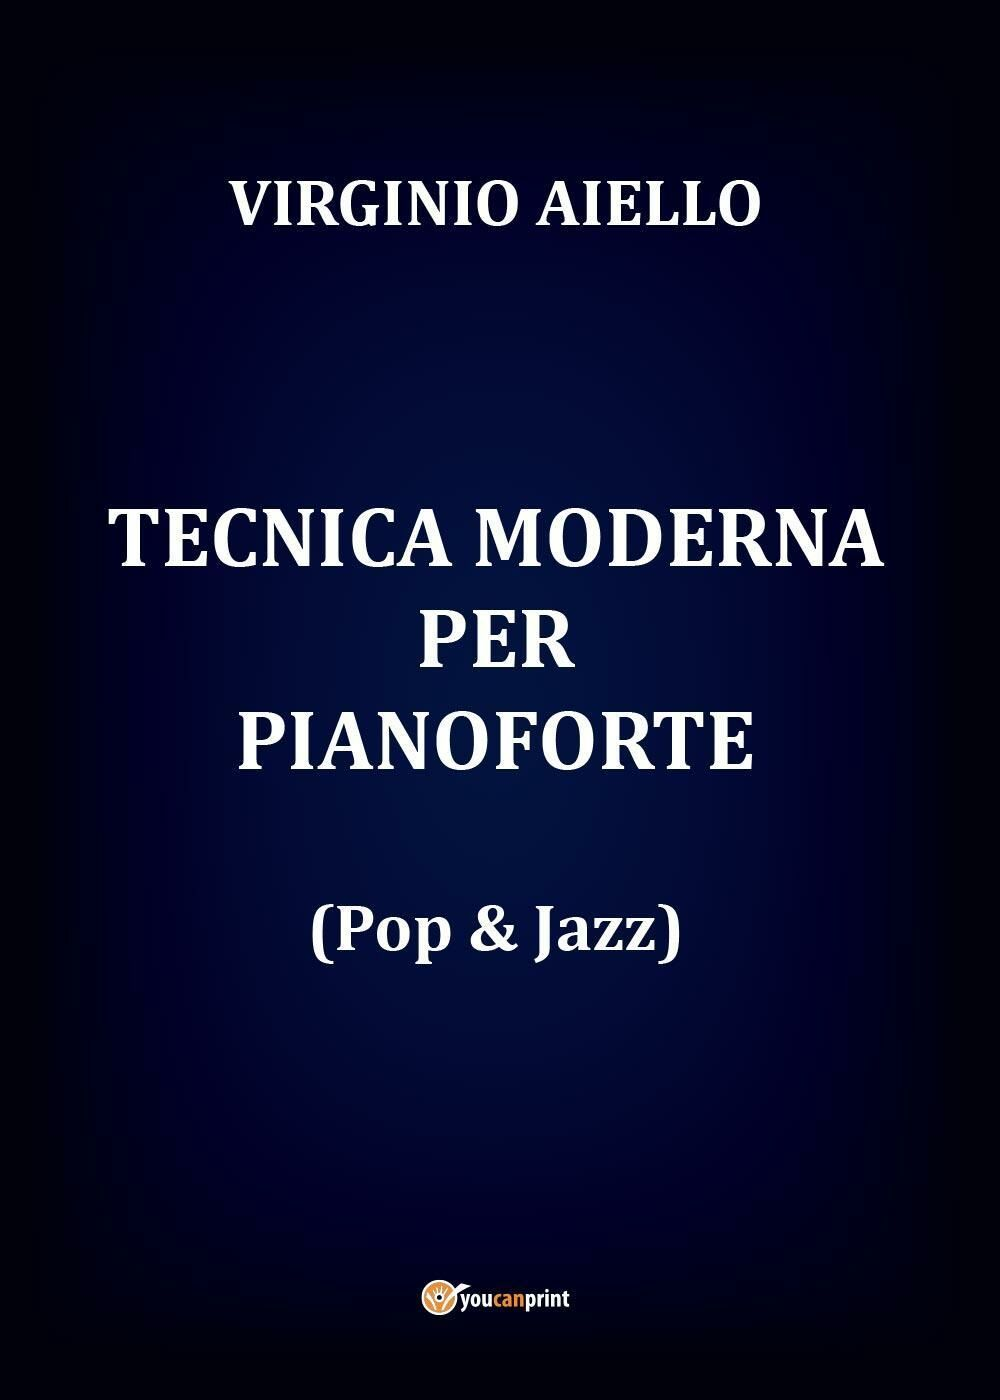 Tecnica moderna per pianoforte (pop & jazz)